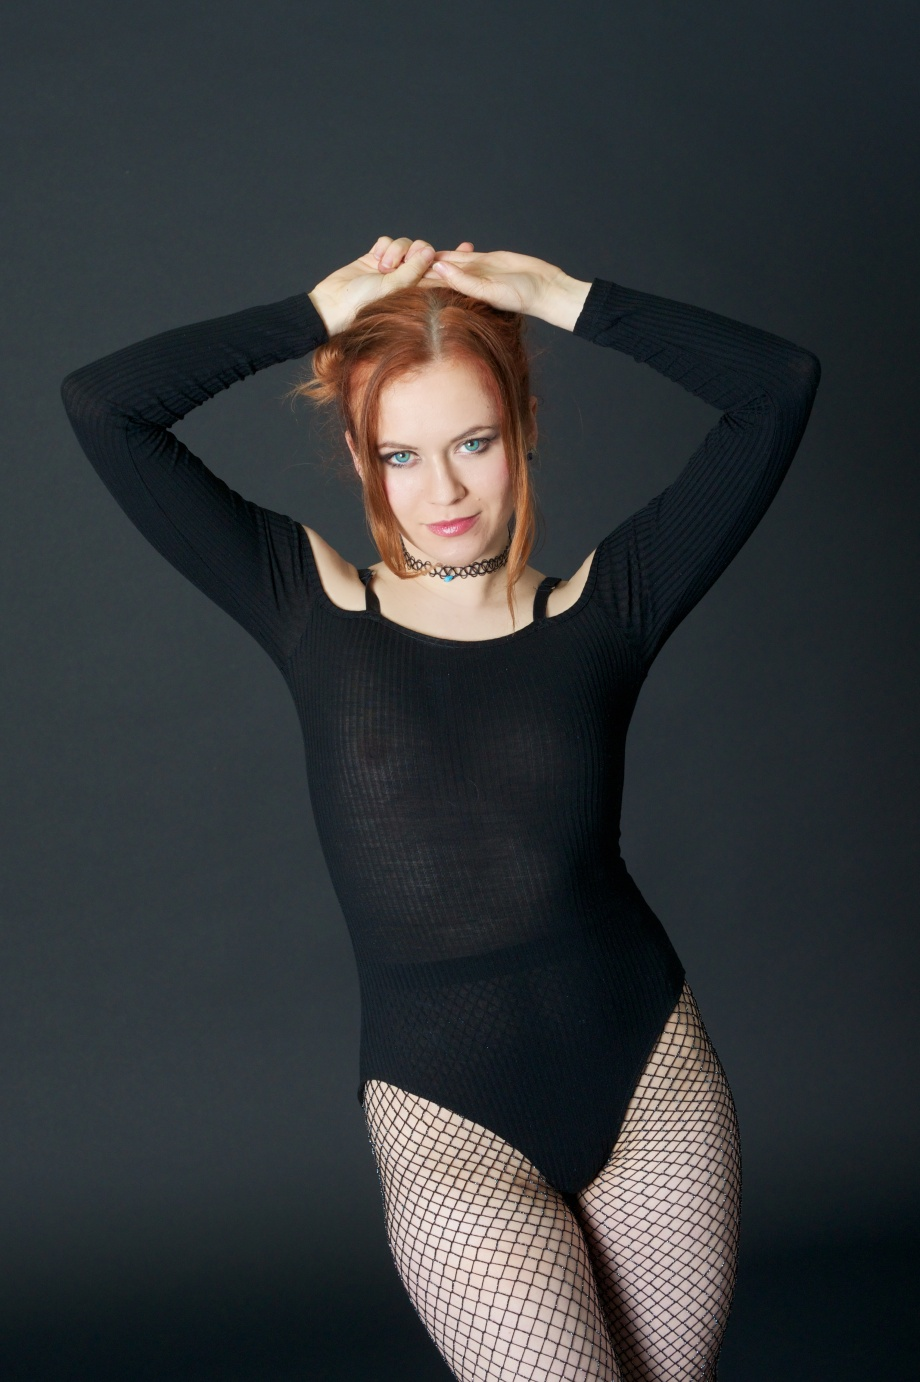 Roksi, Applecore, Cork, Model, Studio, Photoshoot, Glamour, Portrait, red hair, topless, implied, see thru